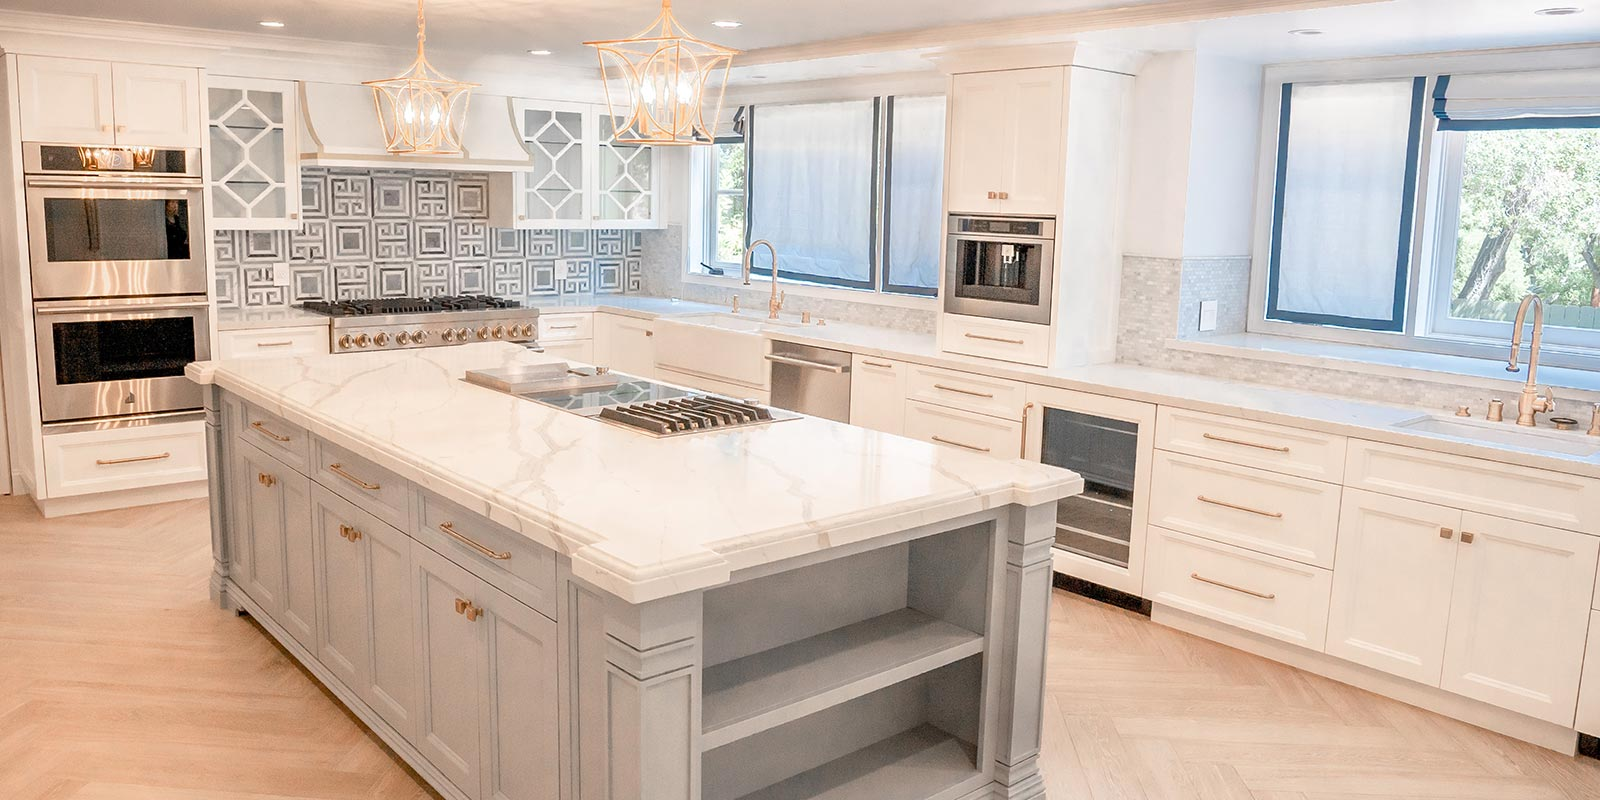 construction-services-img-new-kitchen-remodel